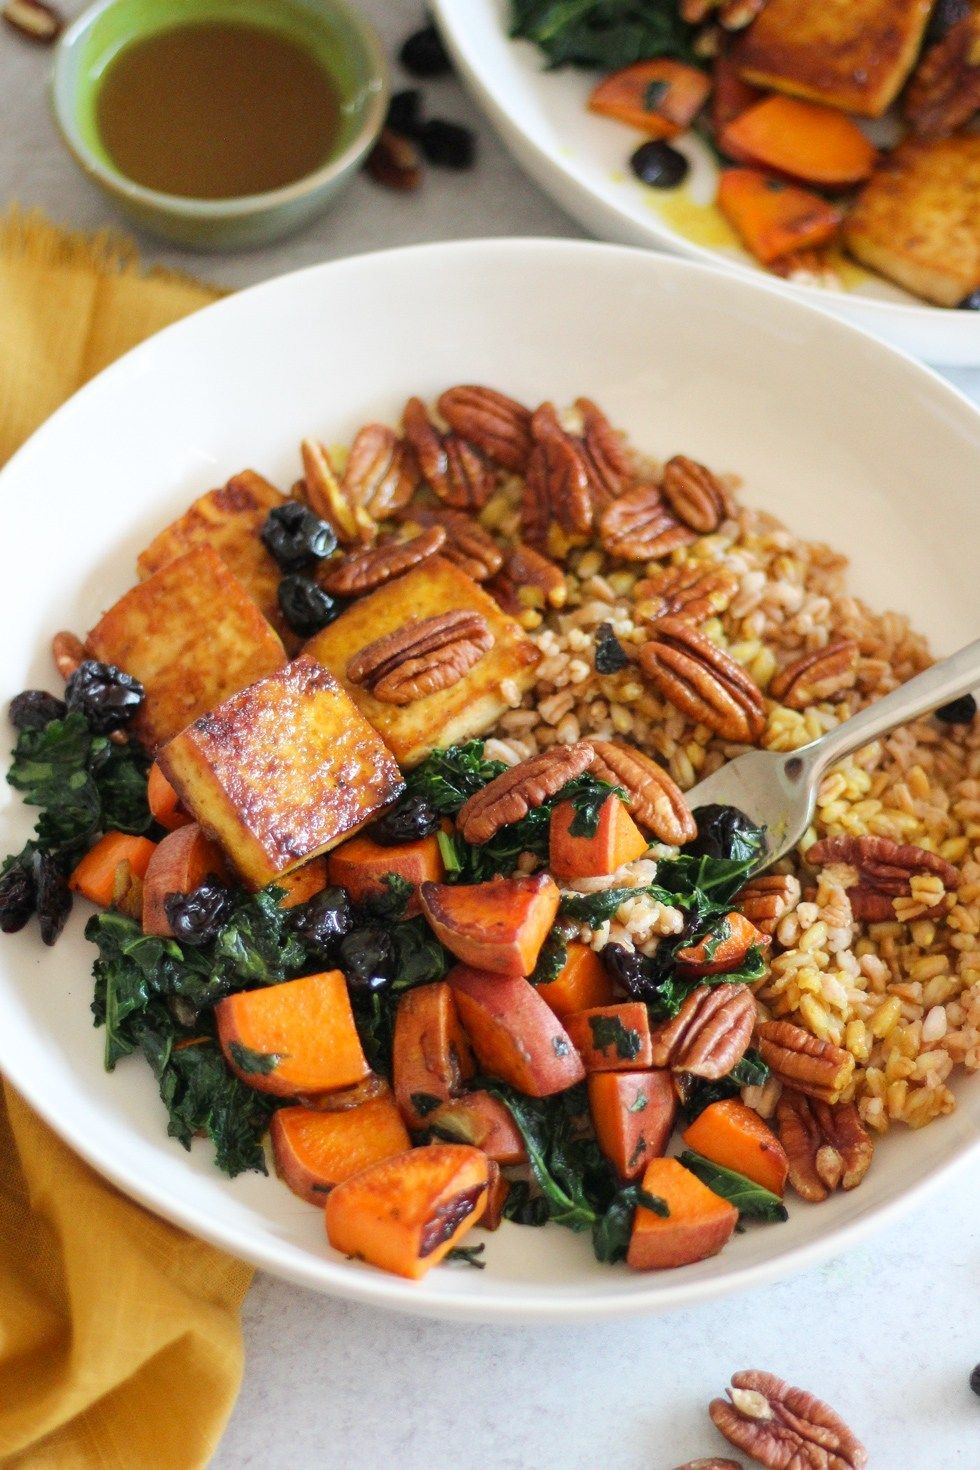 Thanksgiving Leftovers Try These 13 Recipes To Reduce Food Waste In 2020 Recipes Baked Tofu Sauteed Sweet Potatoes